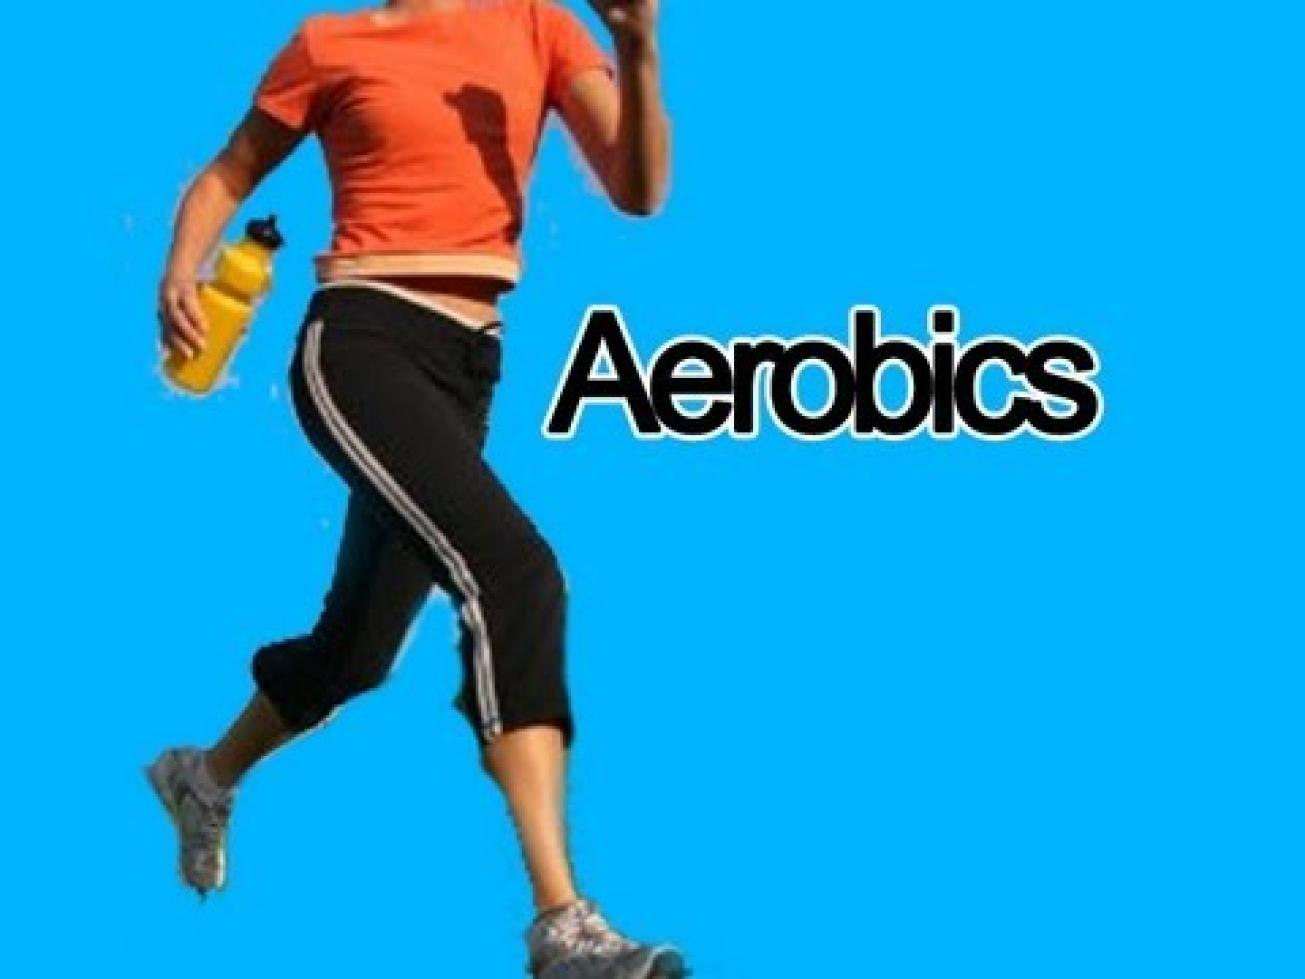 aerobic activities Also called aerobic exercise, endurance exercise includes activities that increase  your breathing and heart rate such as walking, jogging, swimming, and biking.